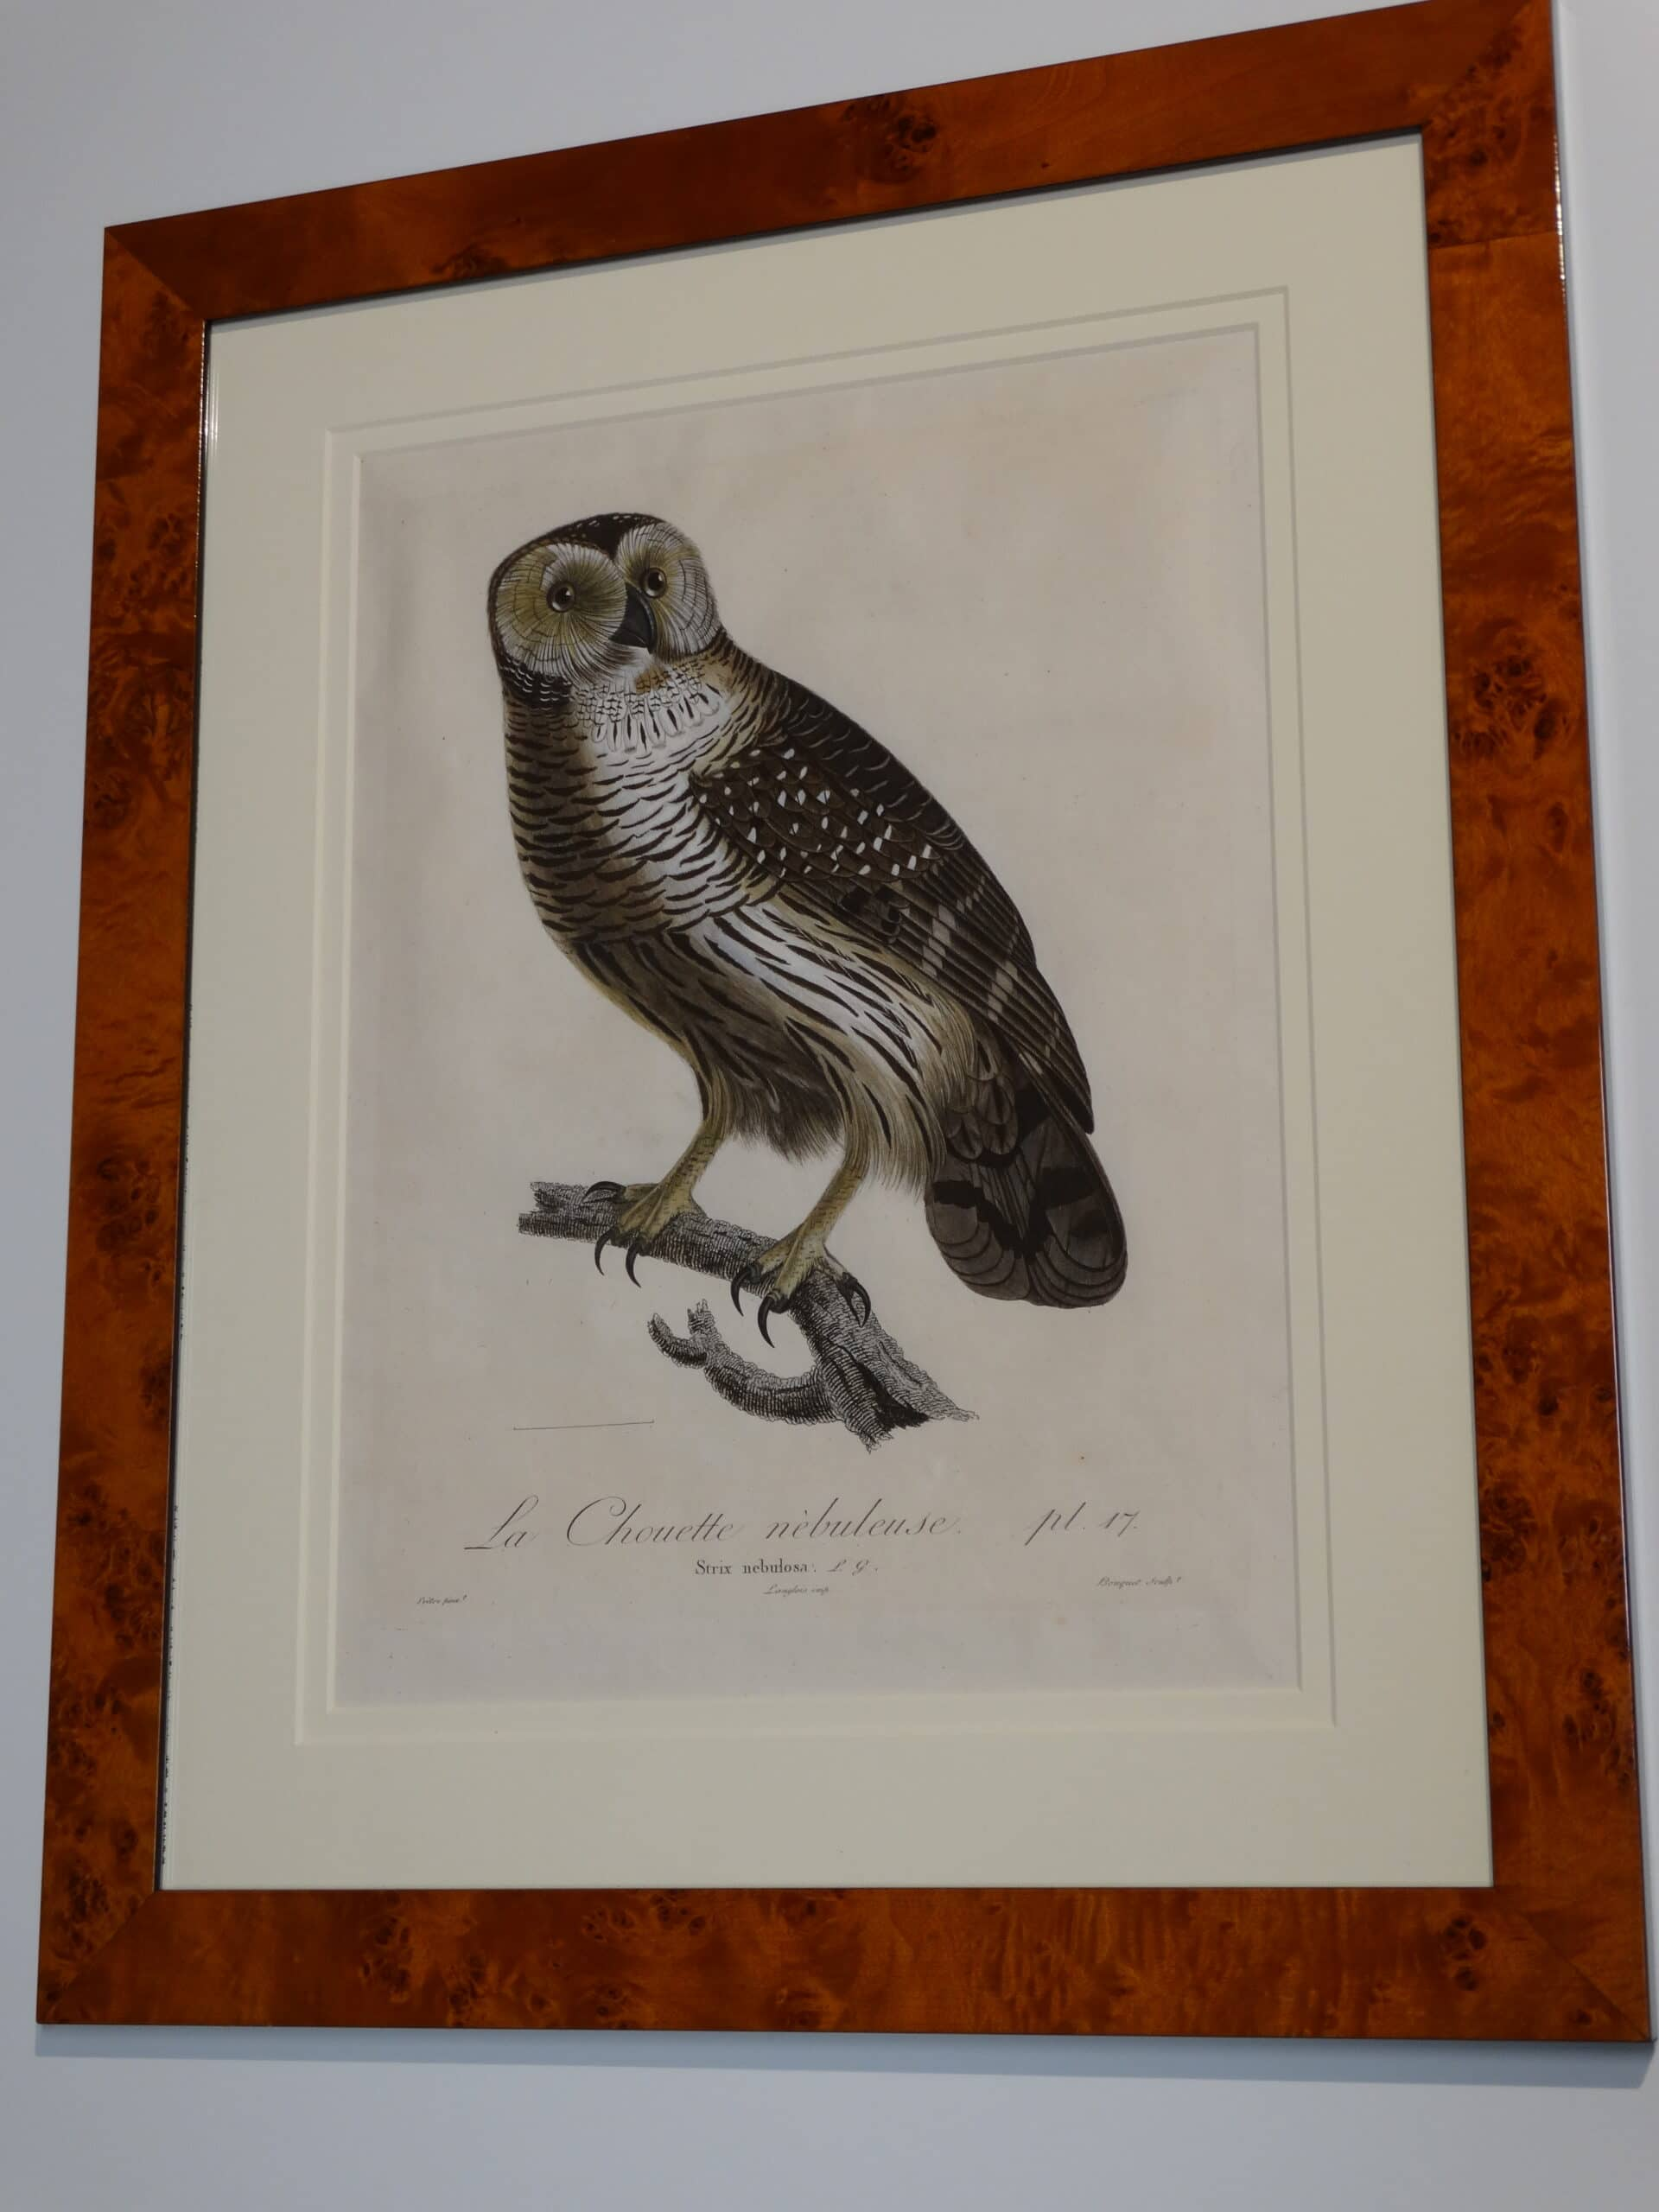 1802 Viellot & Audebert ornithology etching with watercolors of the Great Grey Owl.